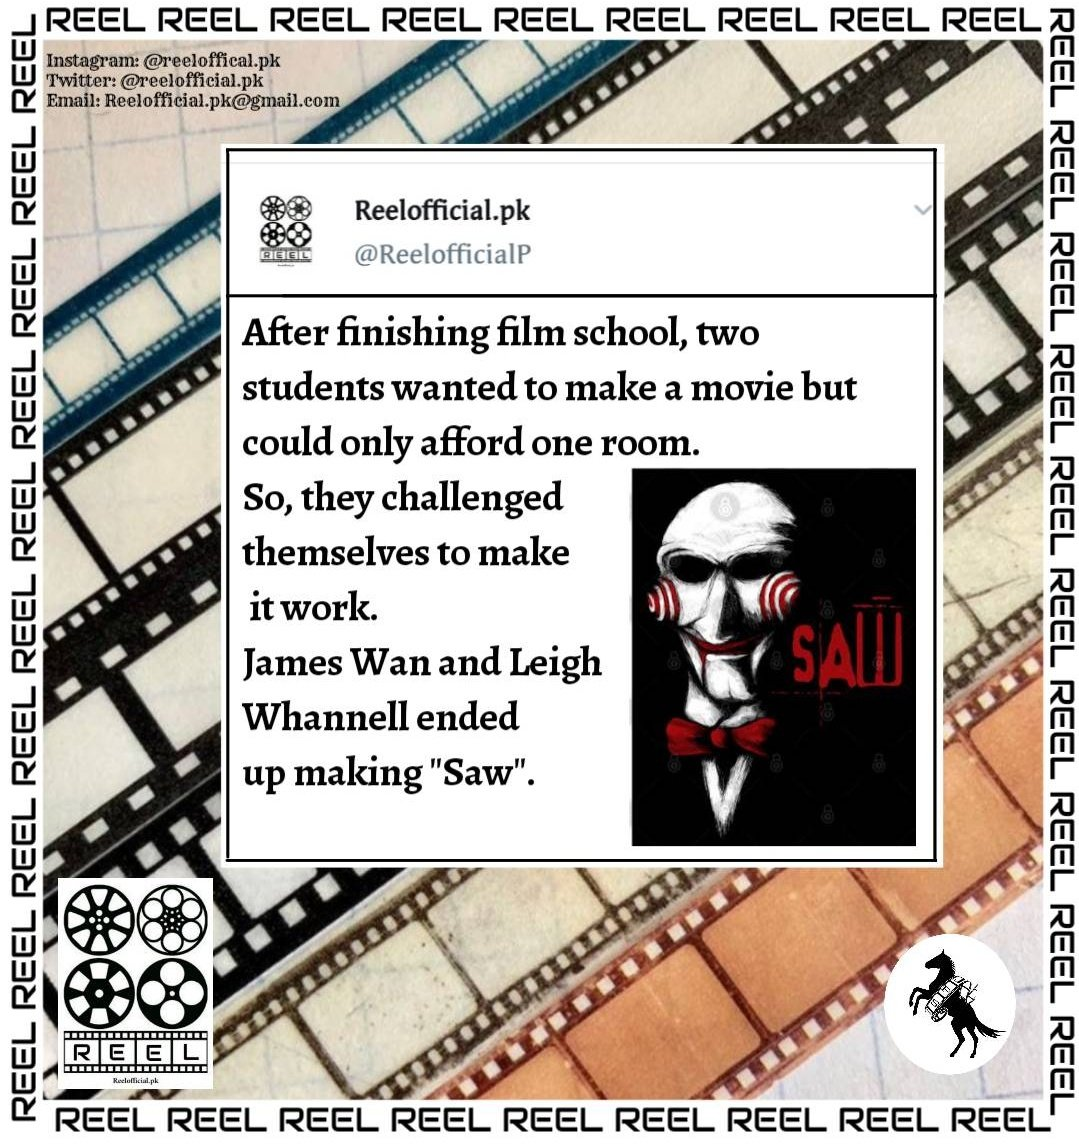 FILM FACTS #FilmTwitter #Hollywood #pakistan #morning #films #quotes #facts #fun #SAW #actress #actor #jameswen #JamesBond #leighwhannell https://t.co/VuJiM3D6dJ